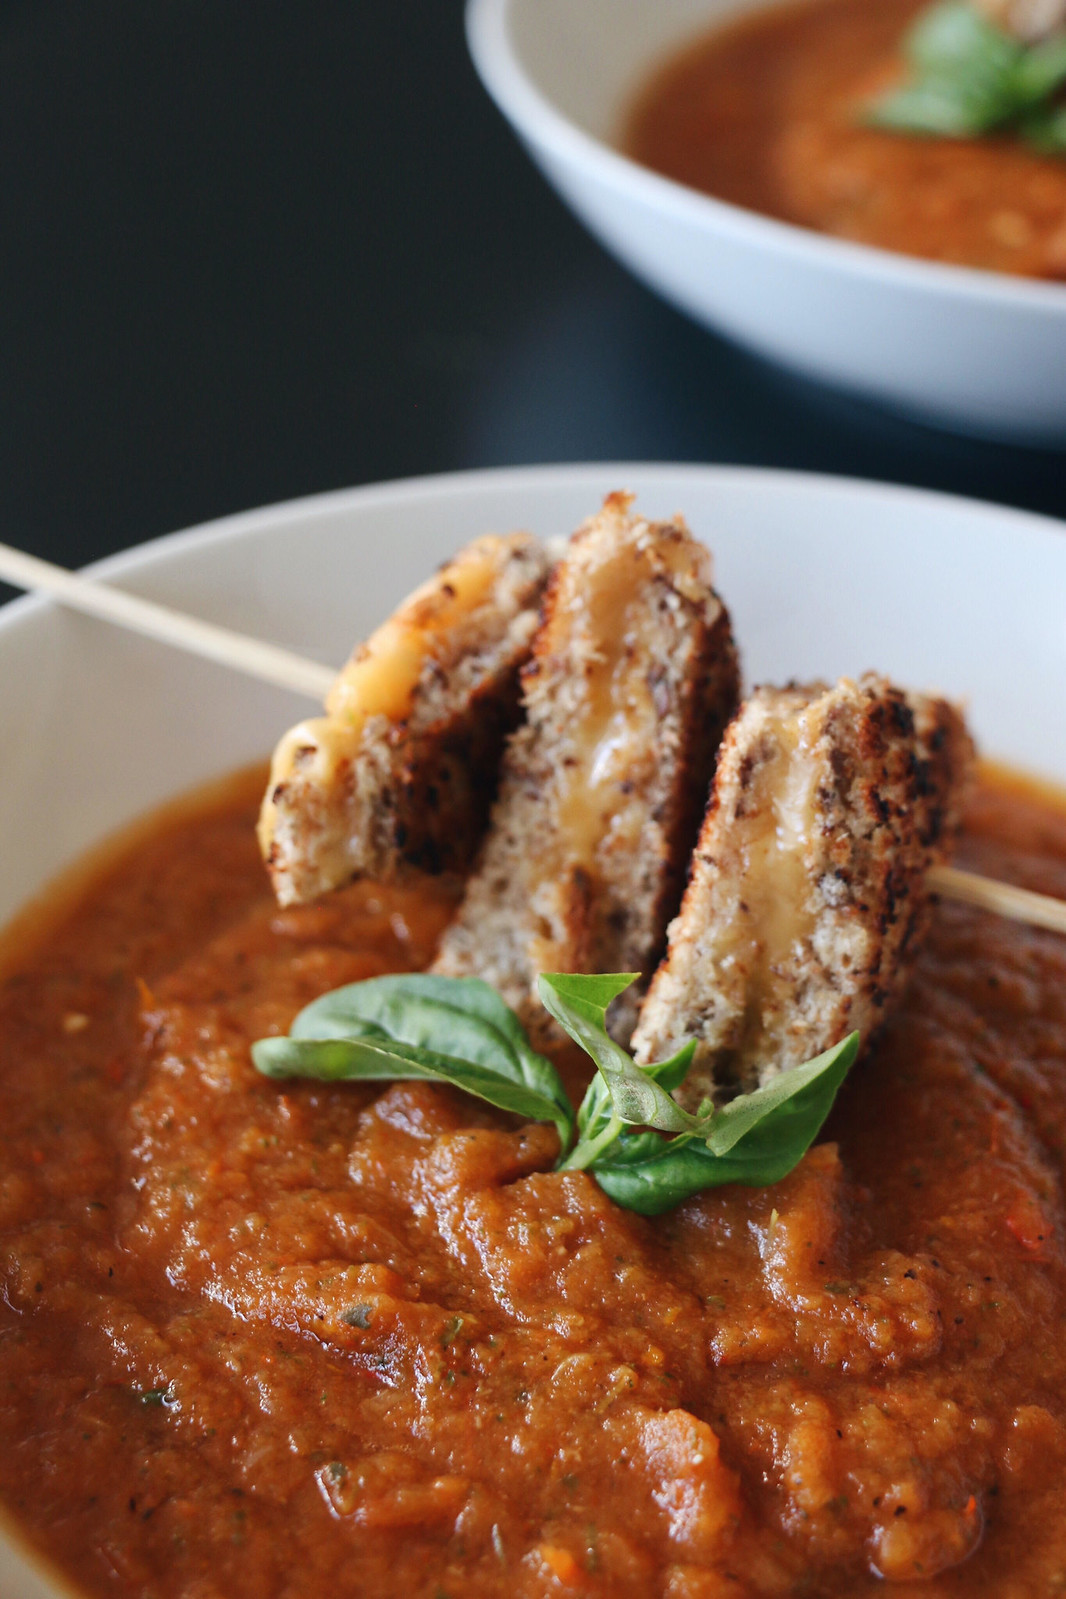 tomato soup & grilled cheese skewer 5